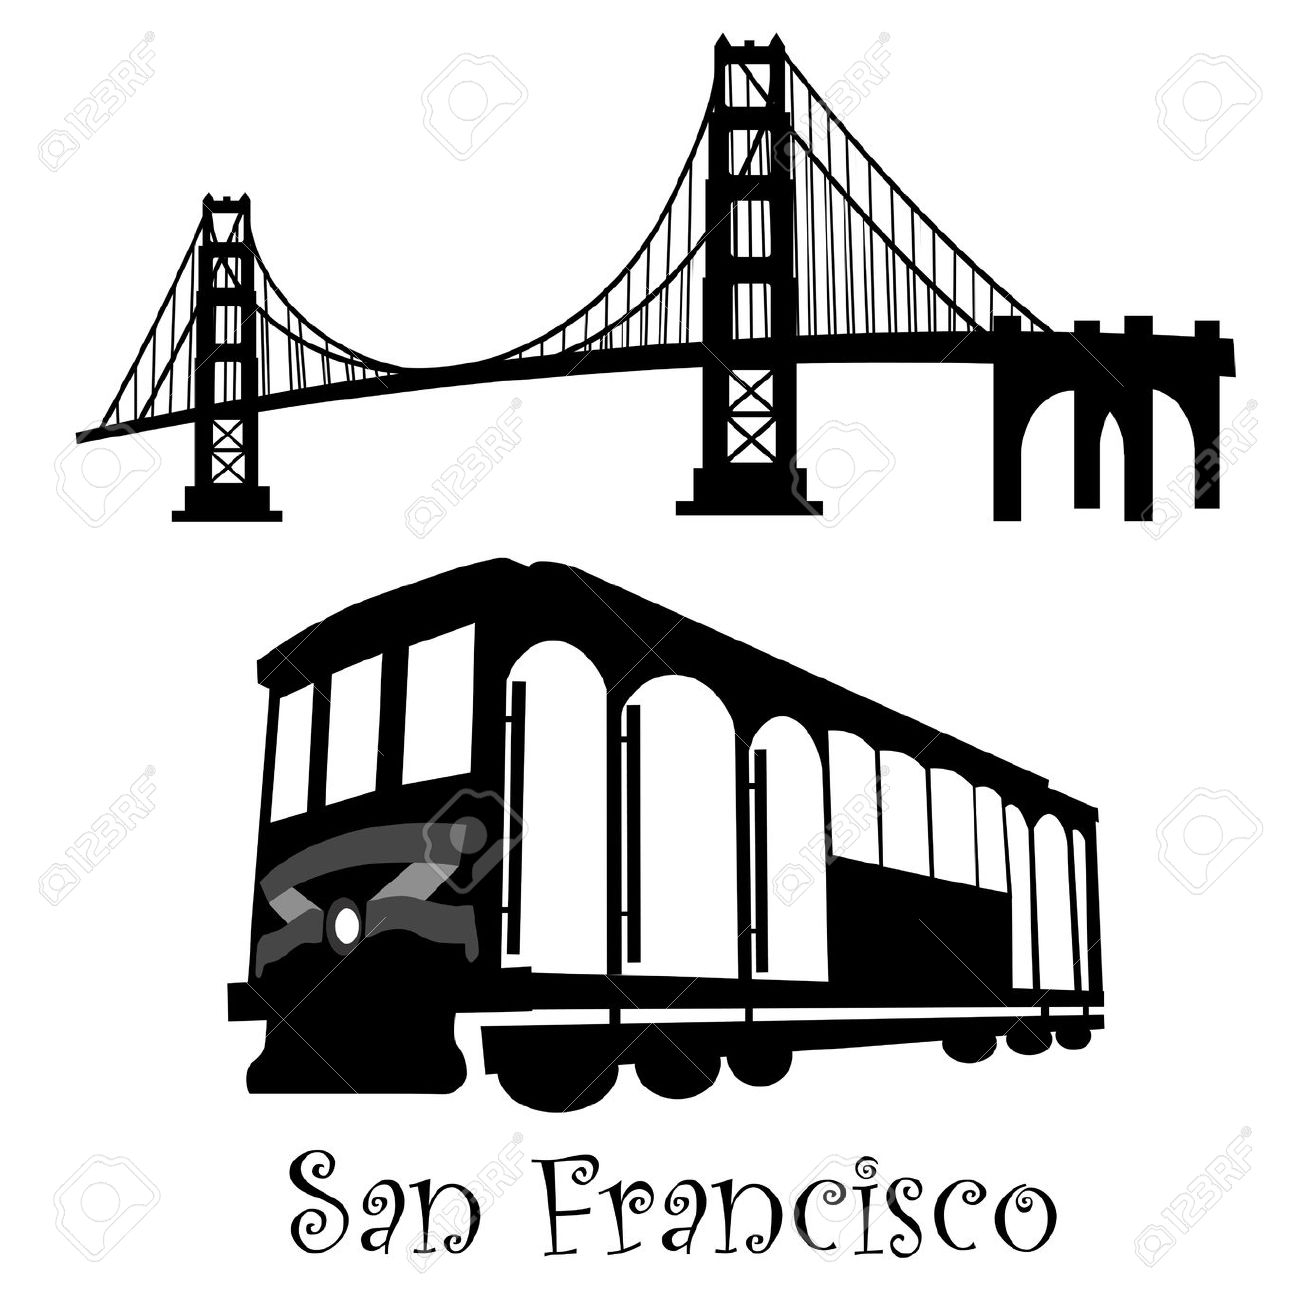 Overhead Cables Clipart